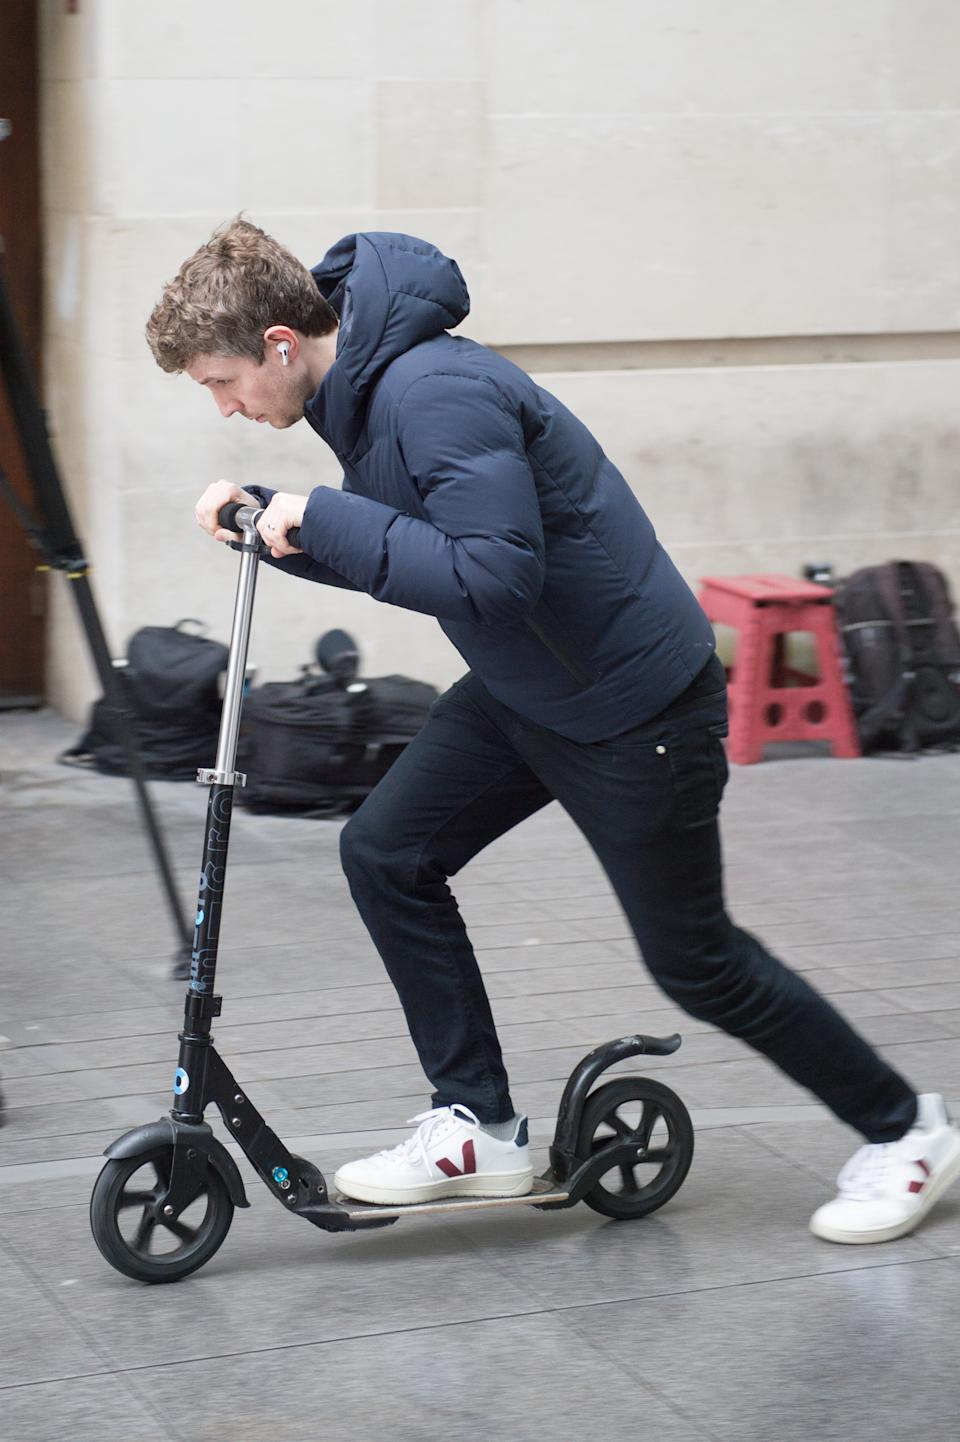 LONDON, ENGLAND - FEBRUARY 09: Matt Edmondson leaves BBC Broadcasting House after his radio show on a scooter on February 9th 2020 in London, United Kingdom. (Photo by Ollie Millington/Getty Images)